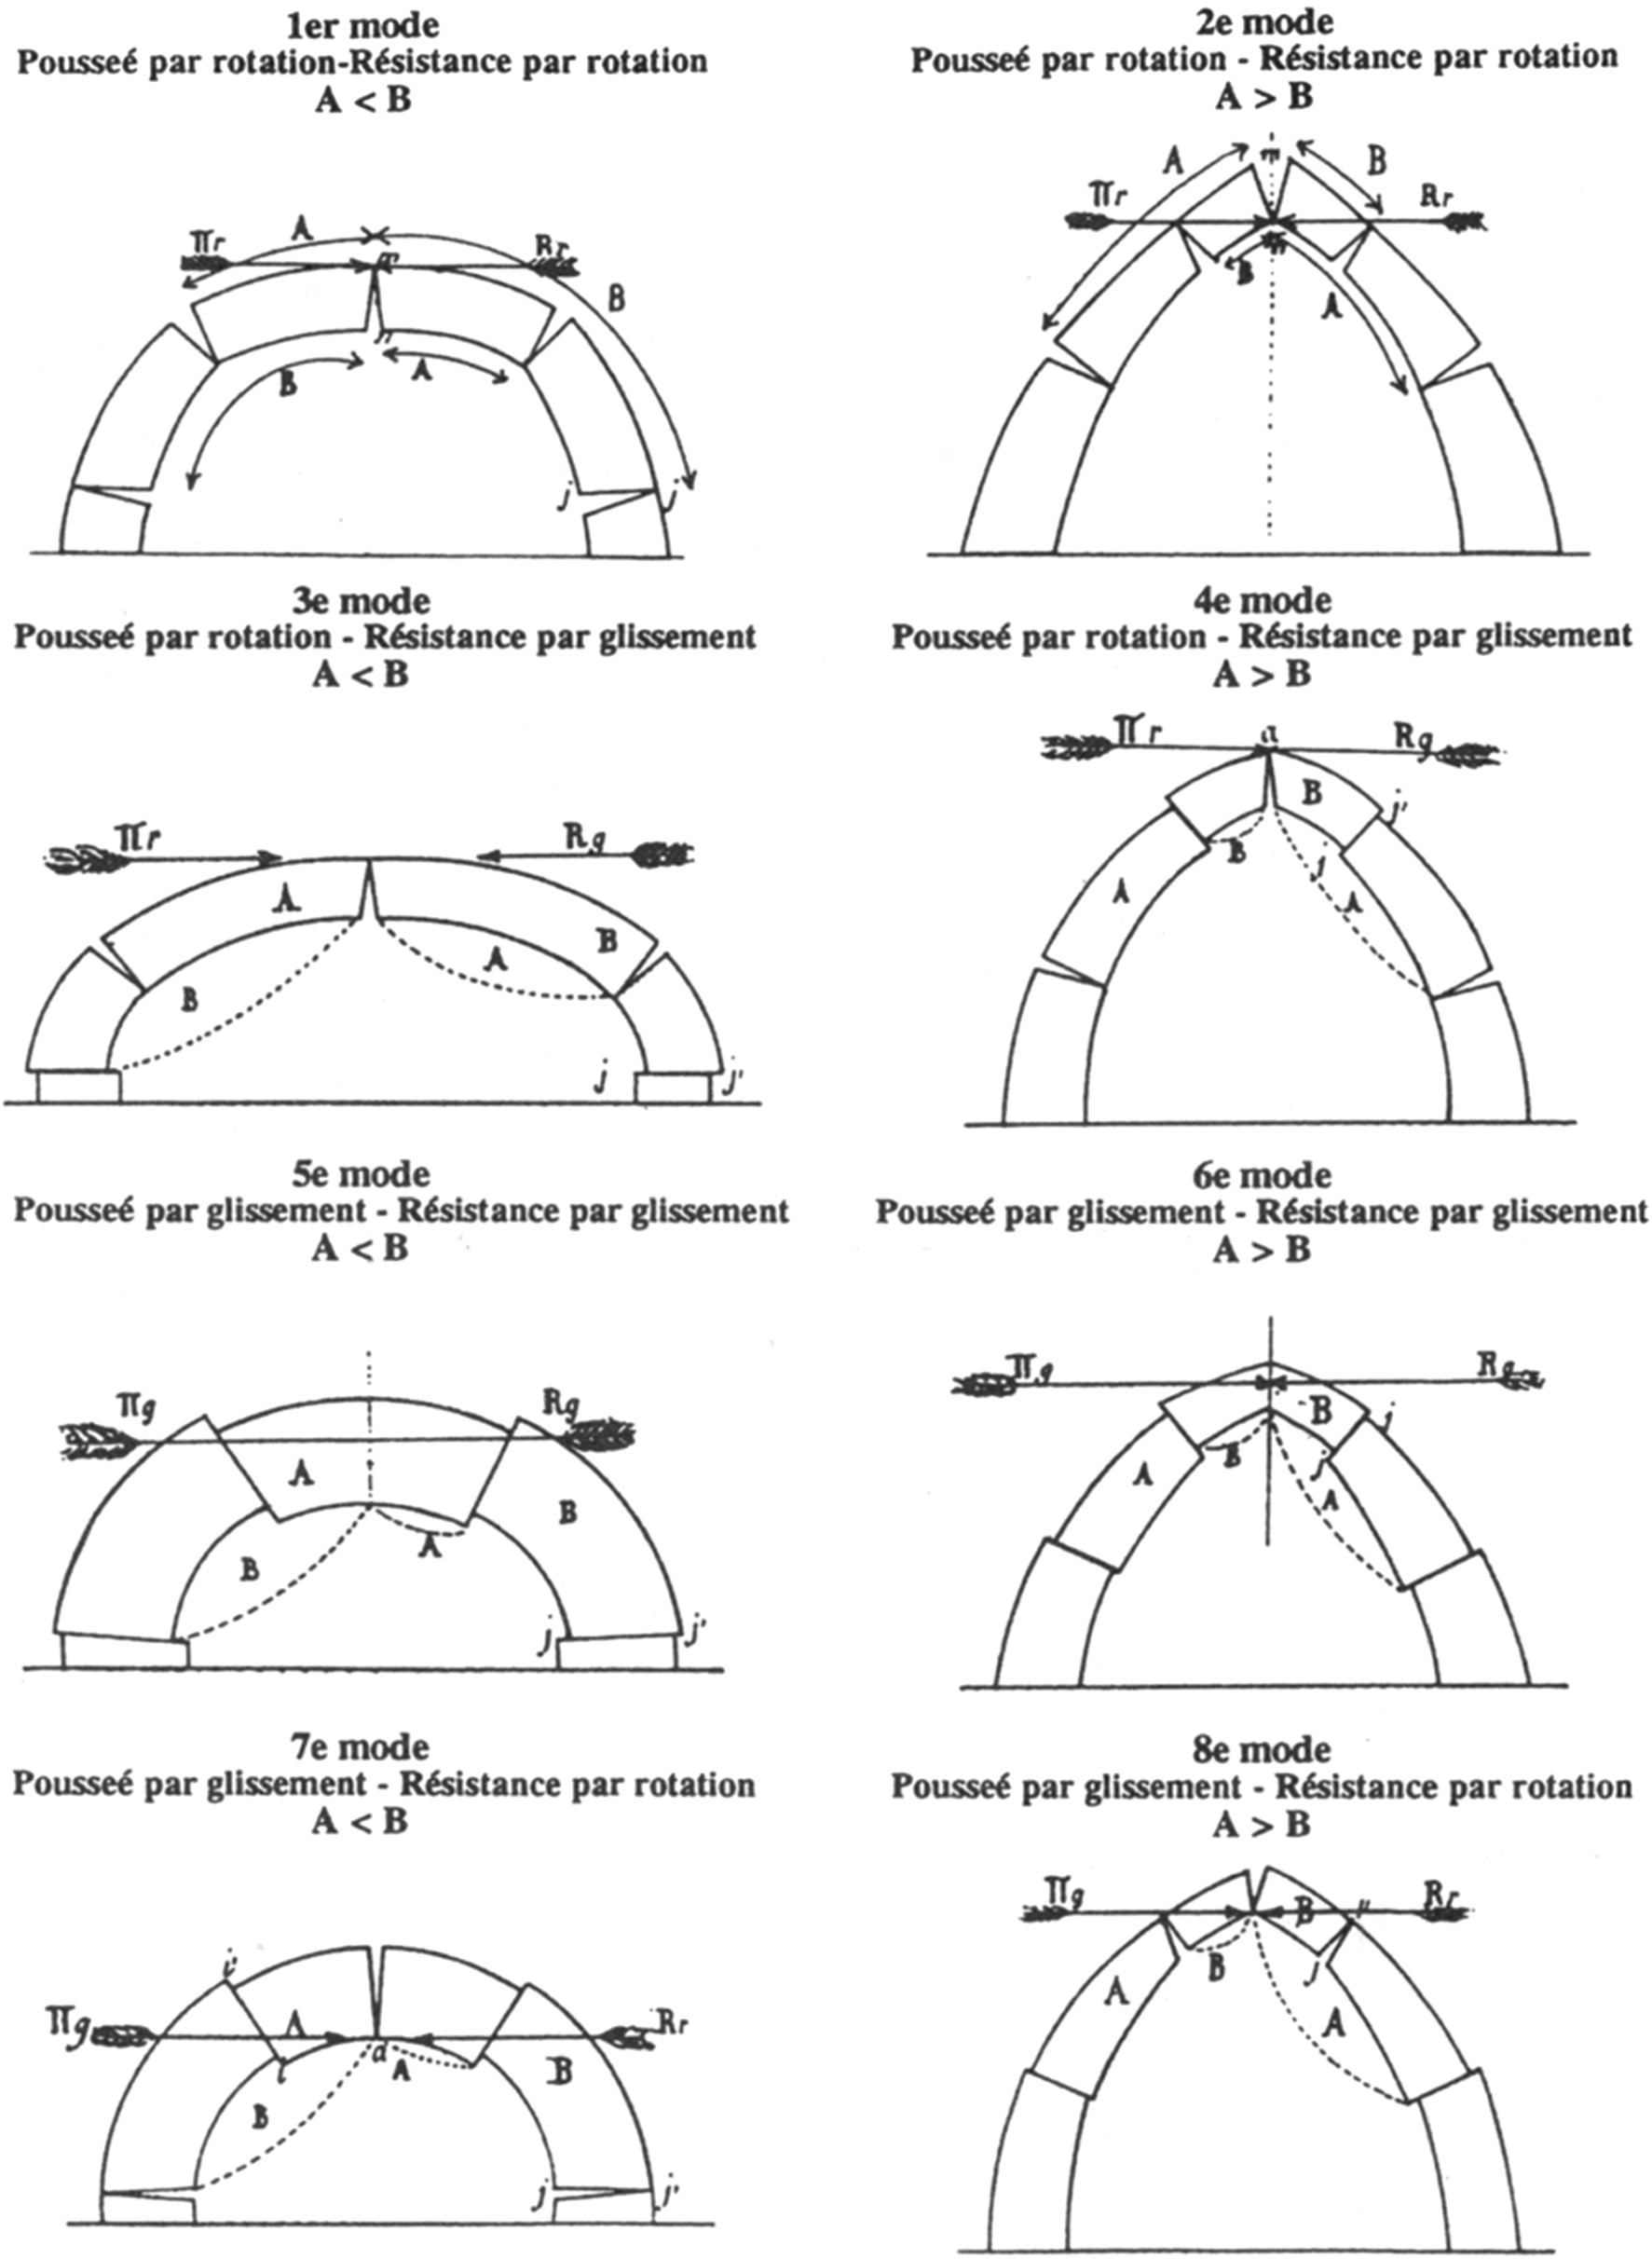 Looking at the collapse modes of circular and pointed